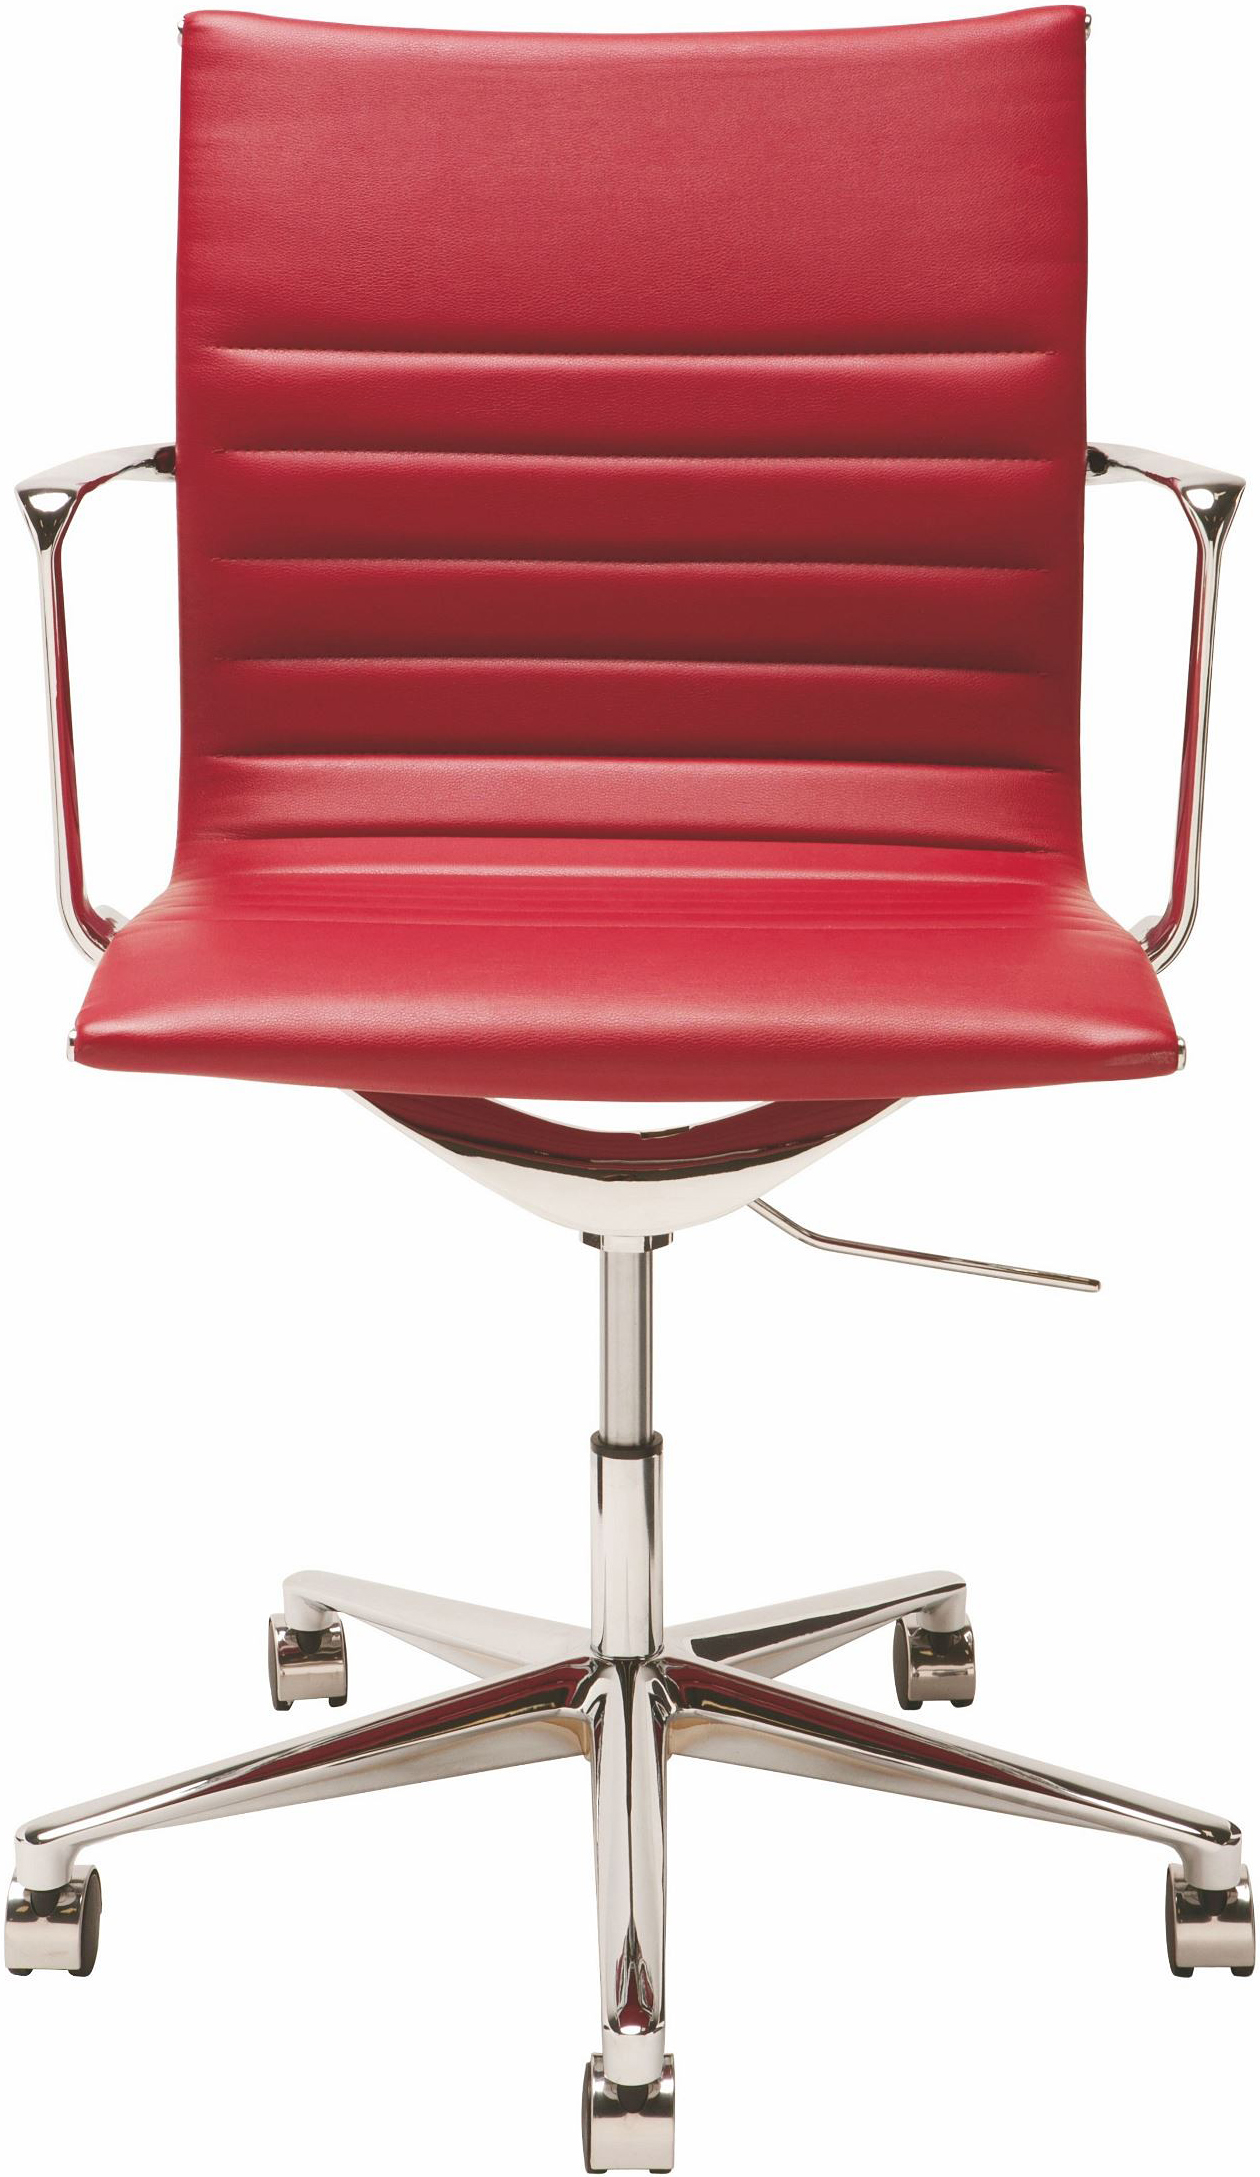 the antonio office chair in deep red